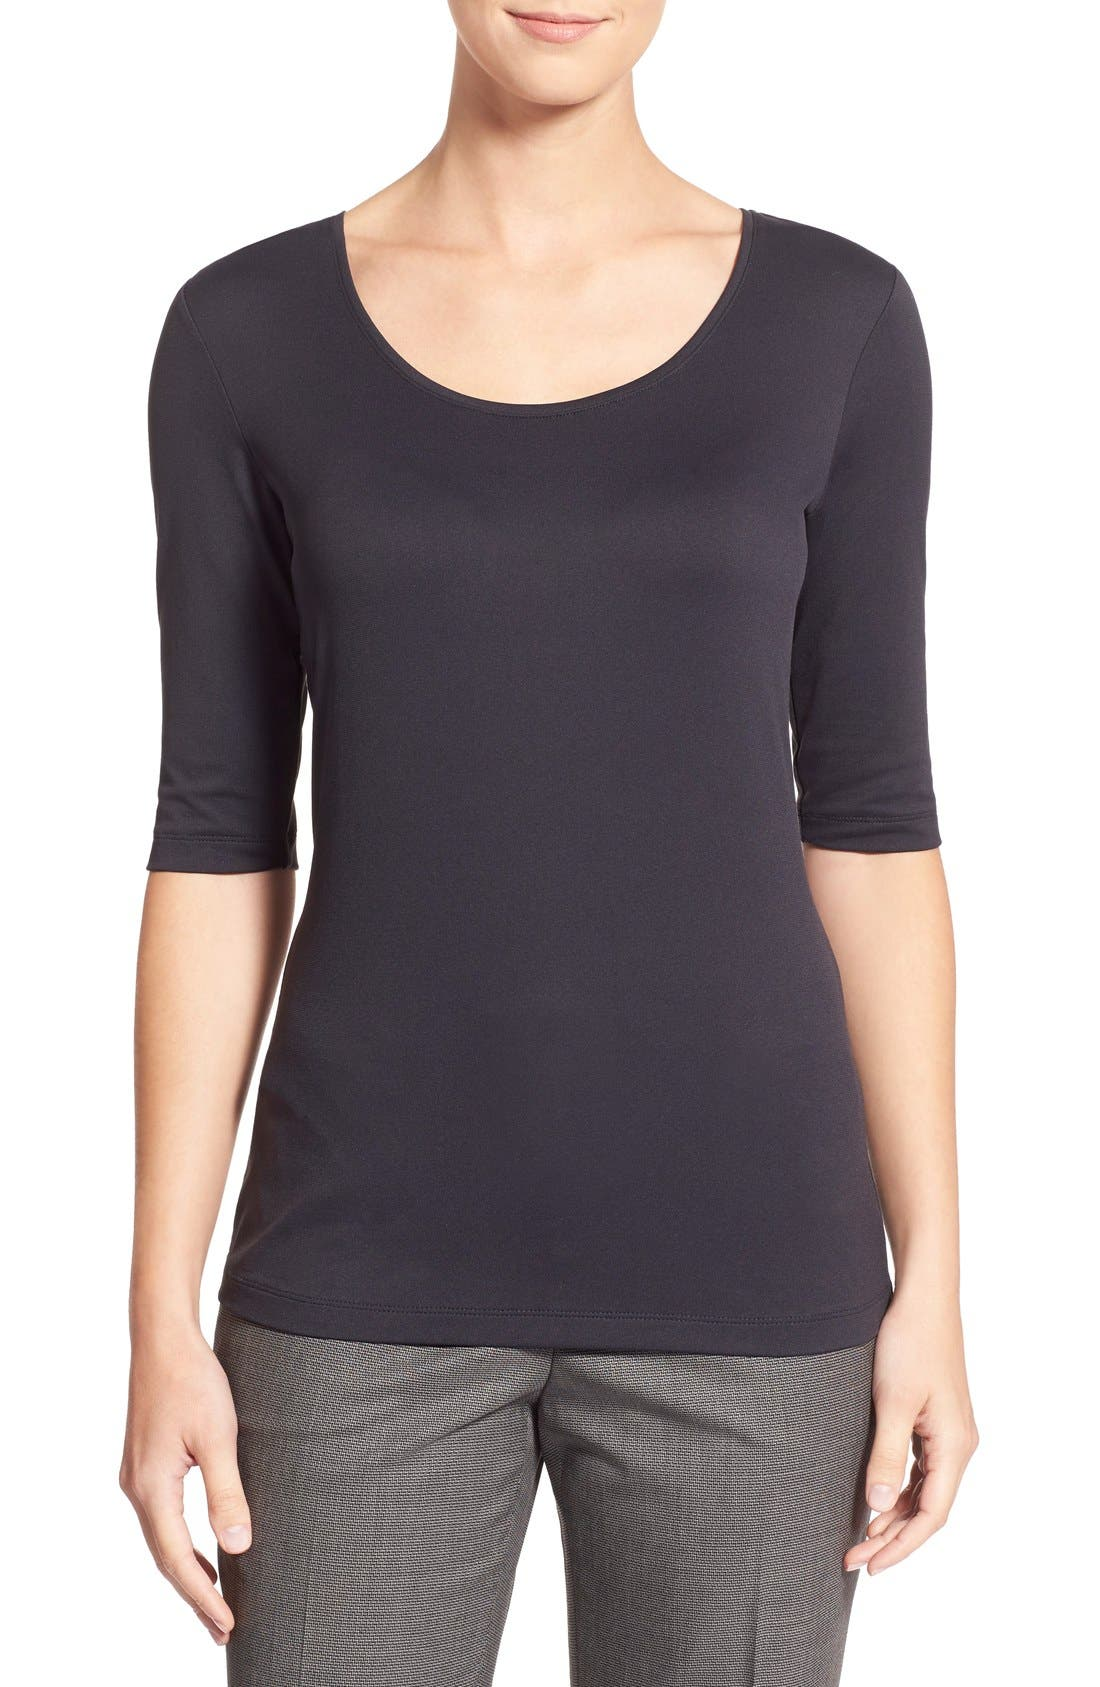 Alternate Image 1 Selected - BOSS Scoop Neck Stretch Jersey Top